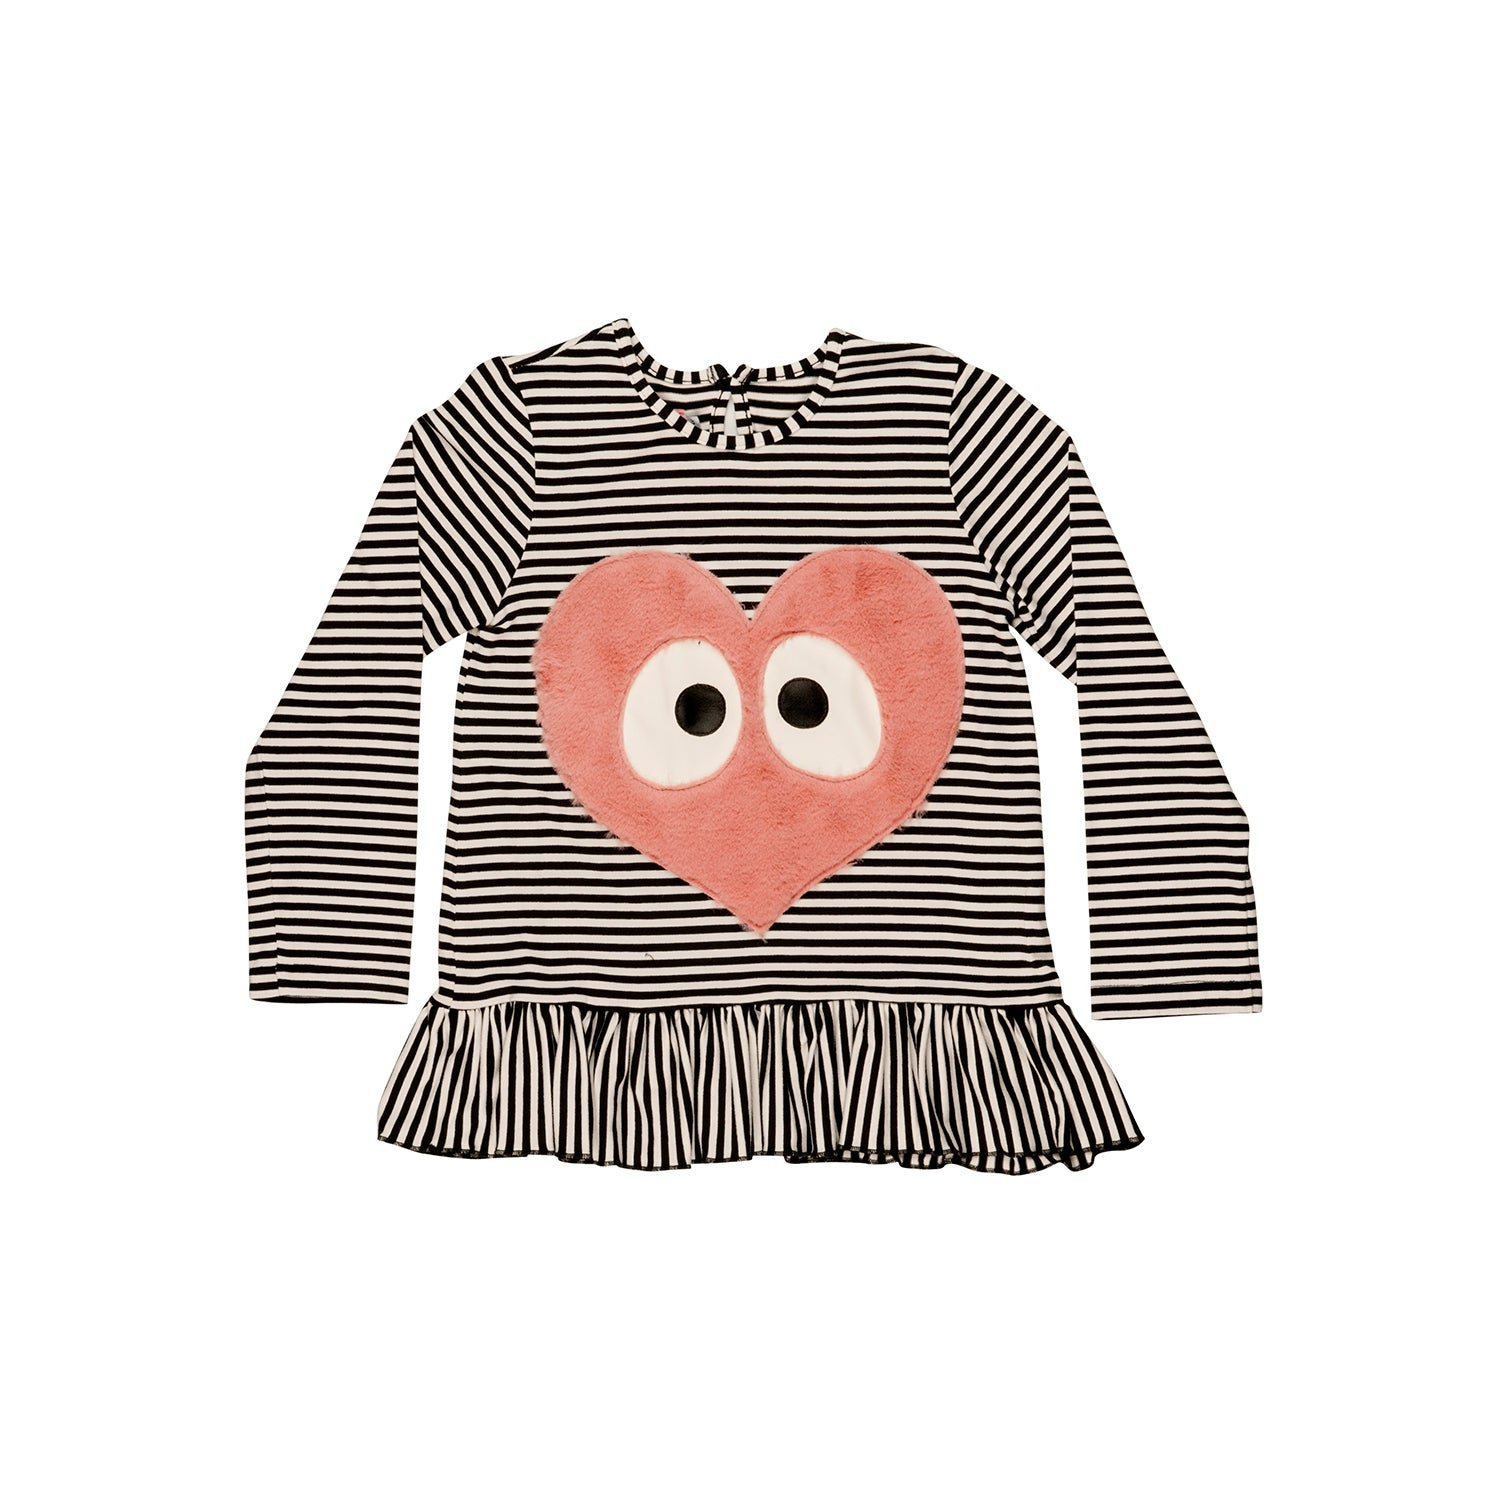 Designer Kids Fashion at Bloom Moda Online Children's Boutique - Wauw Capow by BangBang Miss Heart Shirt,  Blouse